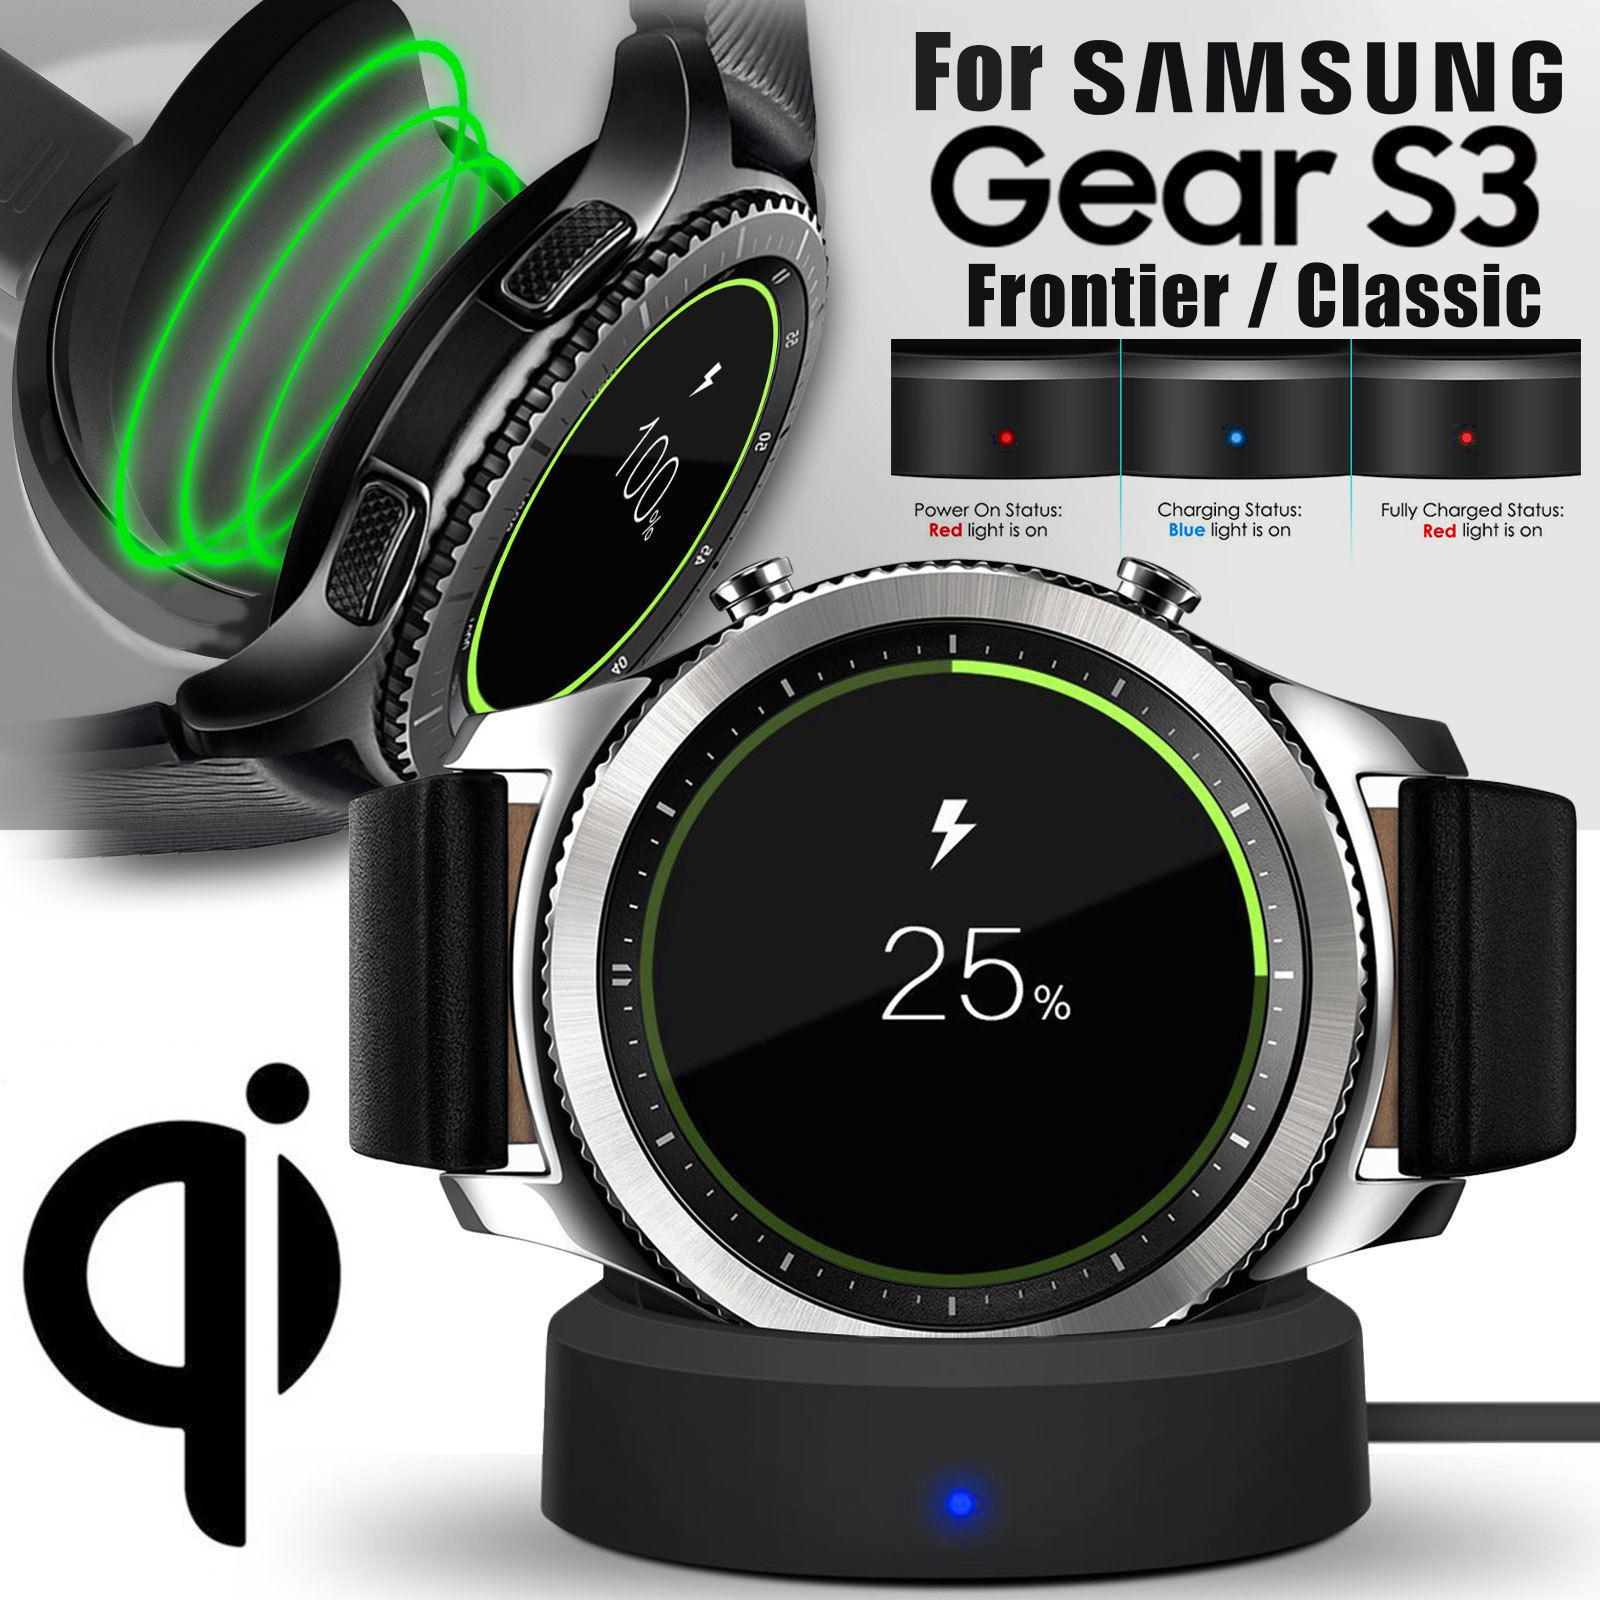 TSV Qi Fast Wireless Charging Dock Cradle Charger For Samsung Gear S3 Classic / Frontier